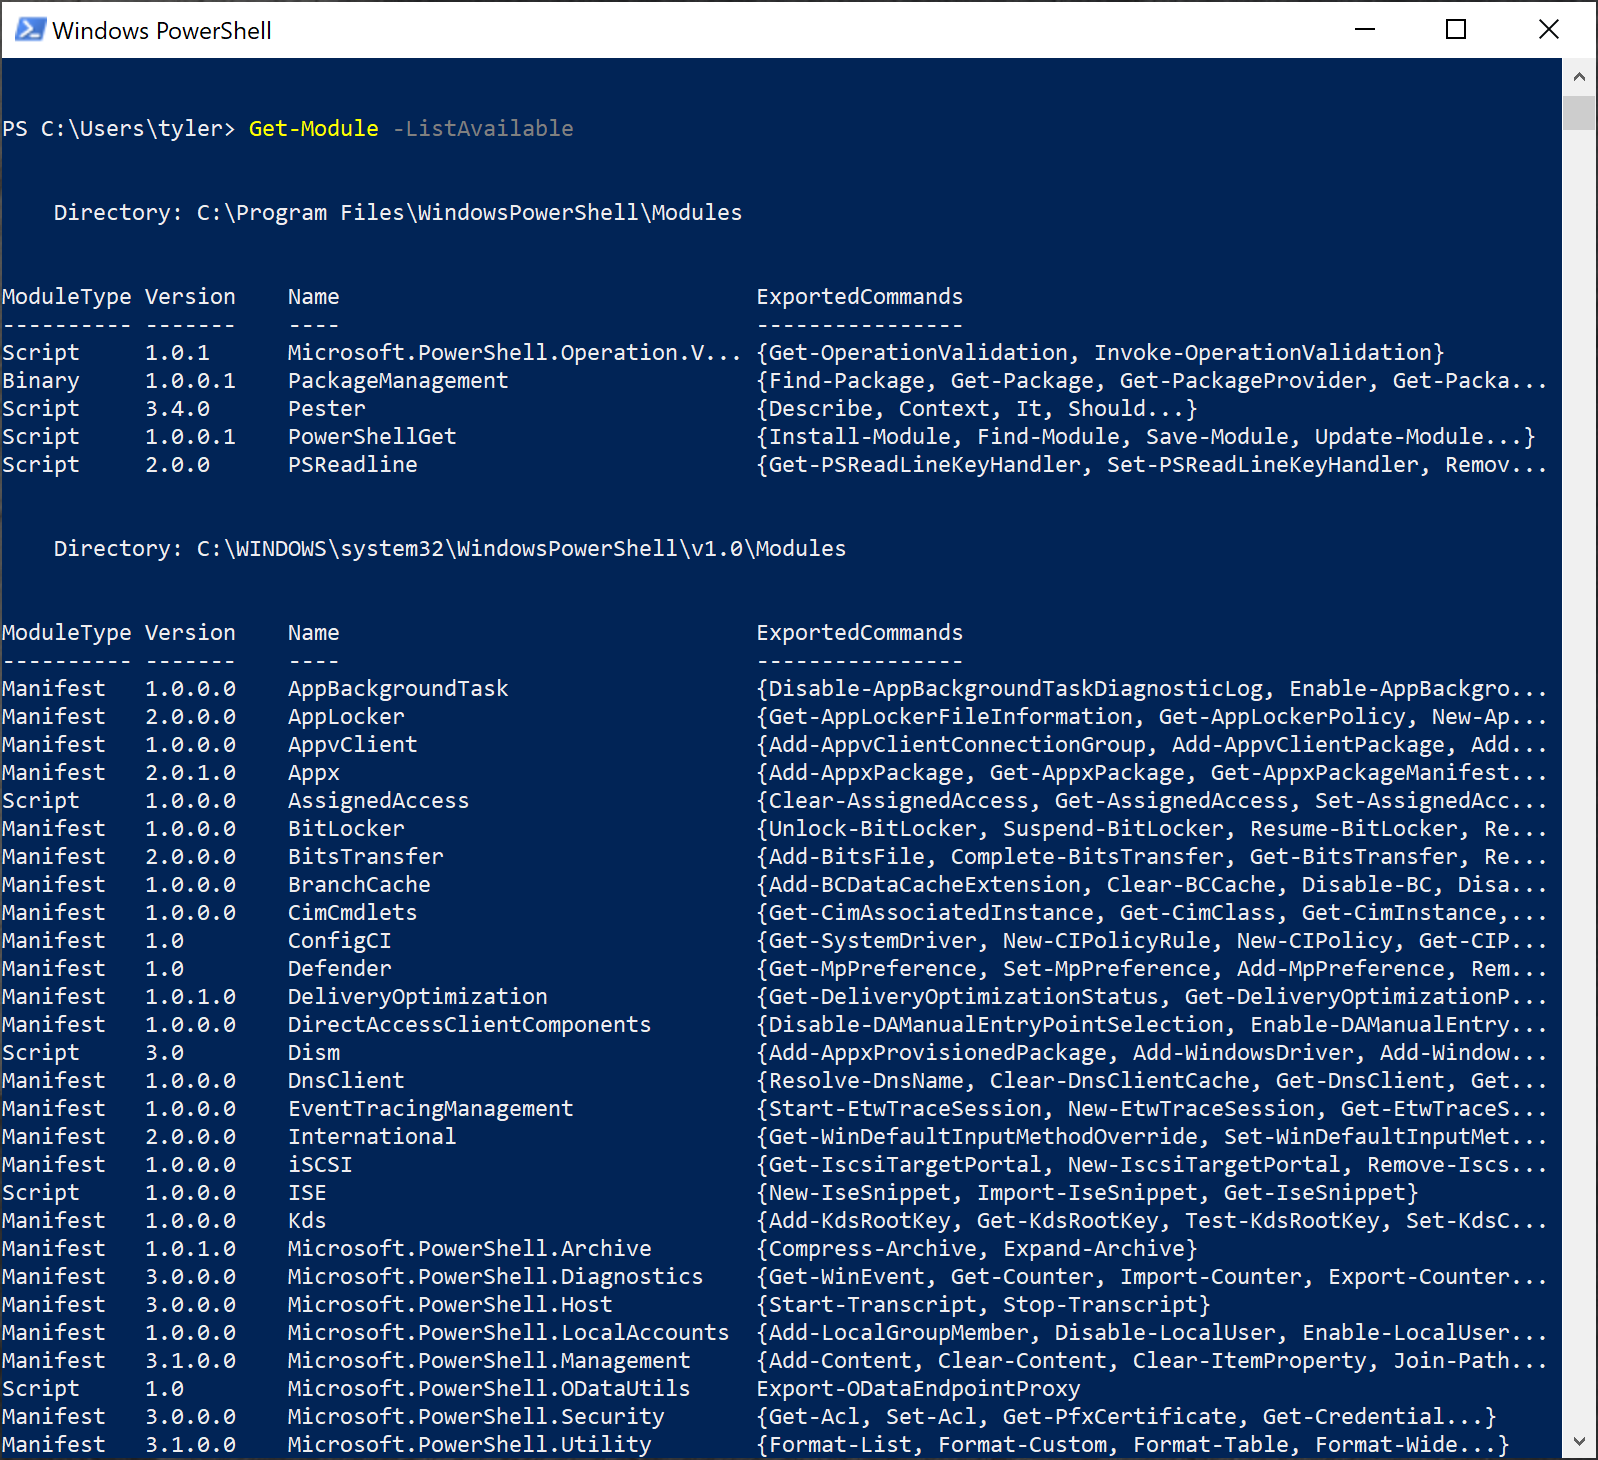 Listing all available modules with Get-Module -ListAvailable